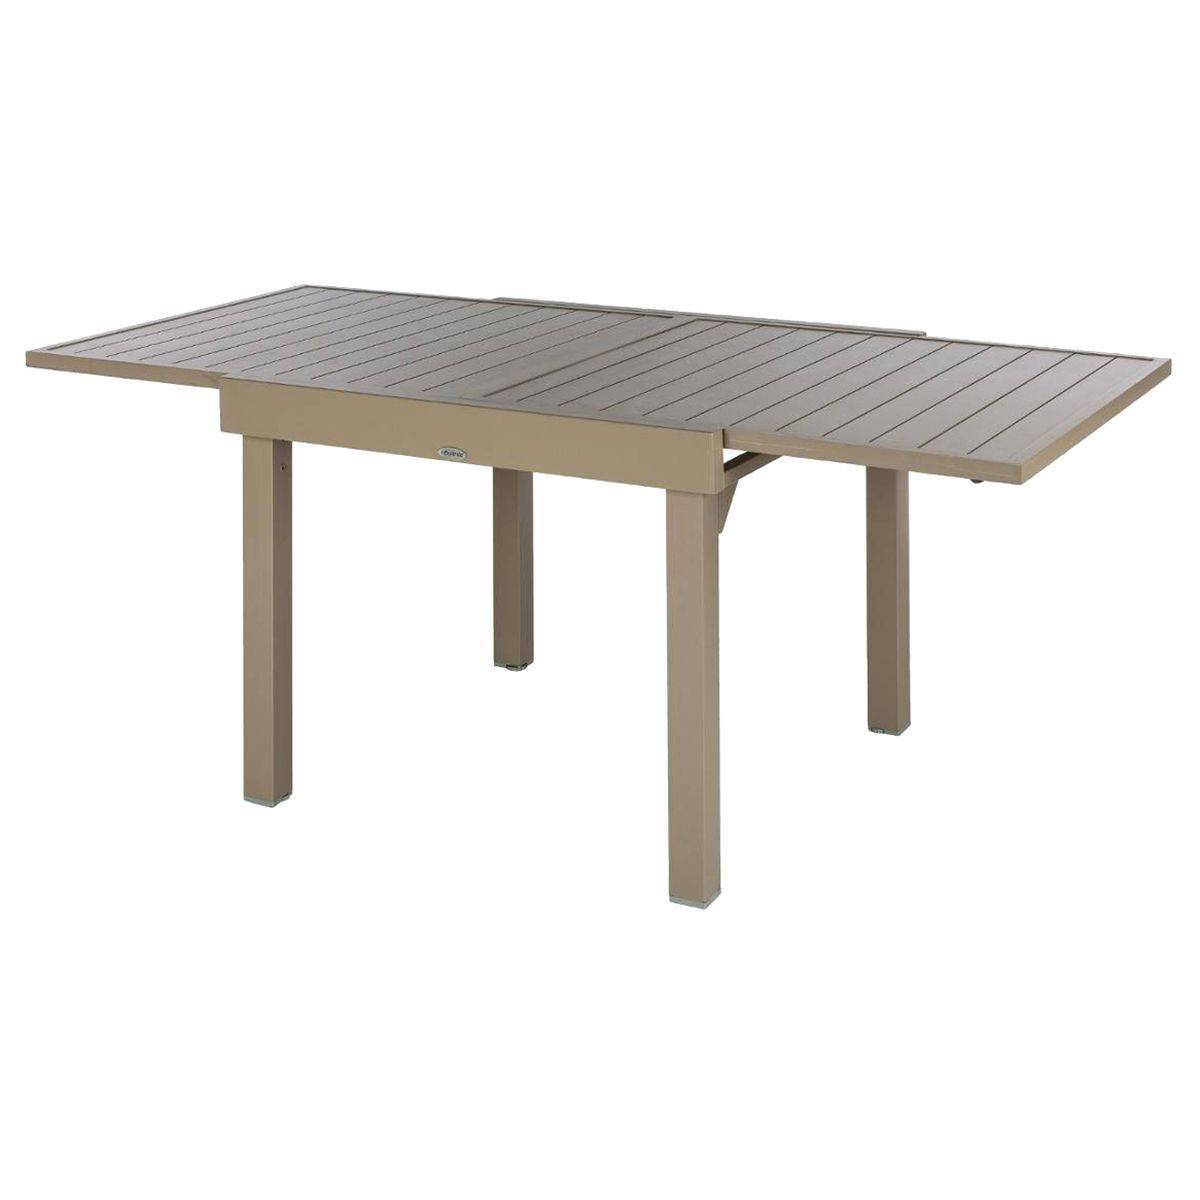 table de jardin extensible piazza taupe hesp ride 8 places. Black Bedroom Furniture Sets. Home Design Ideas